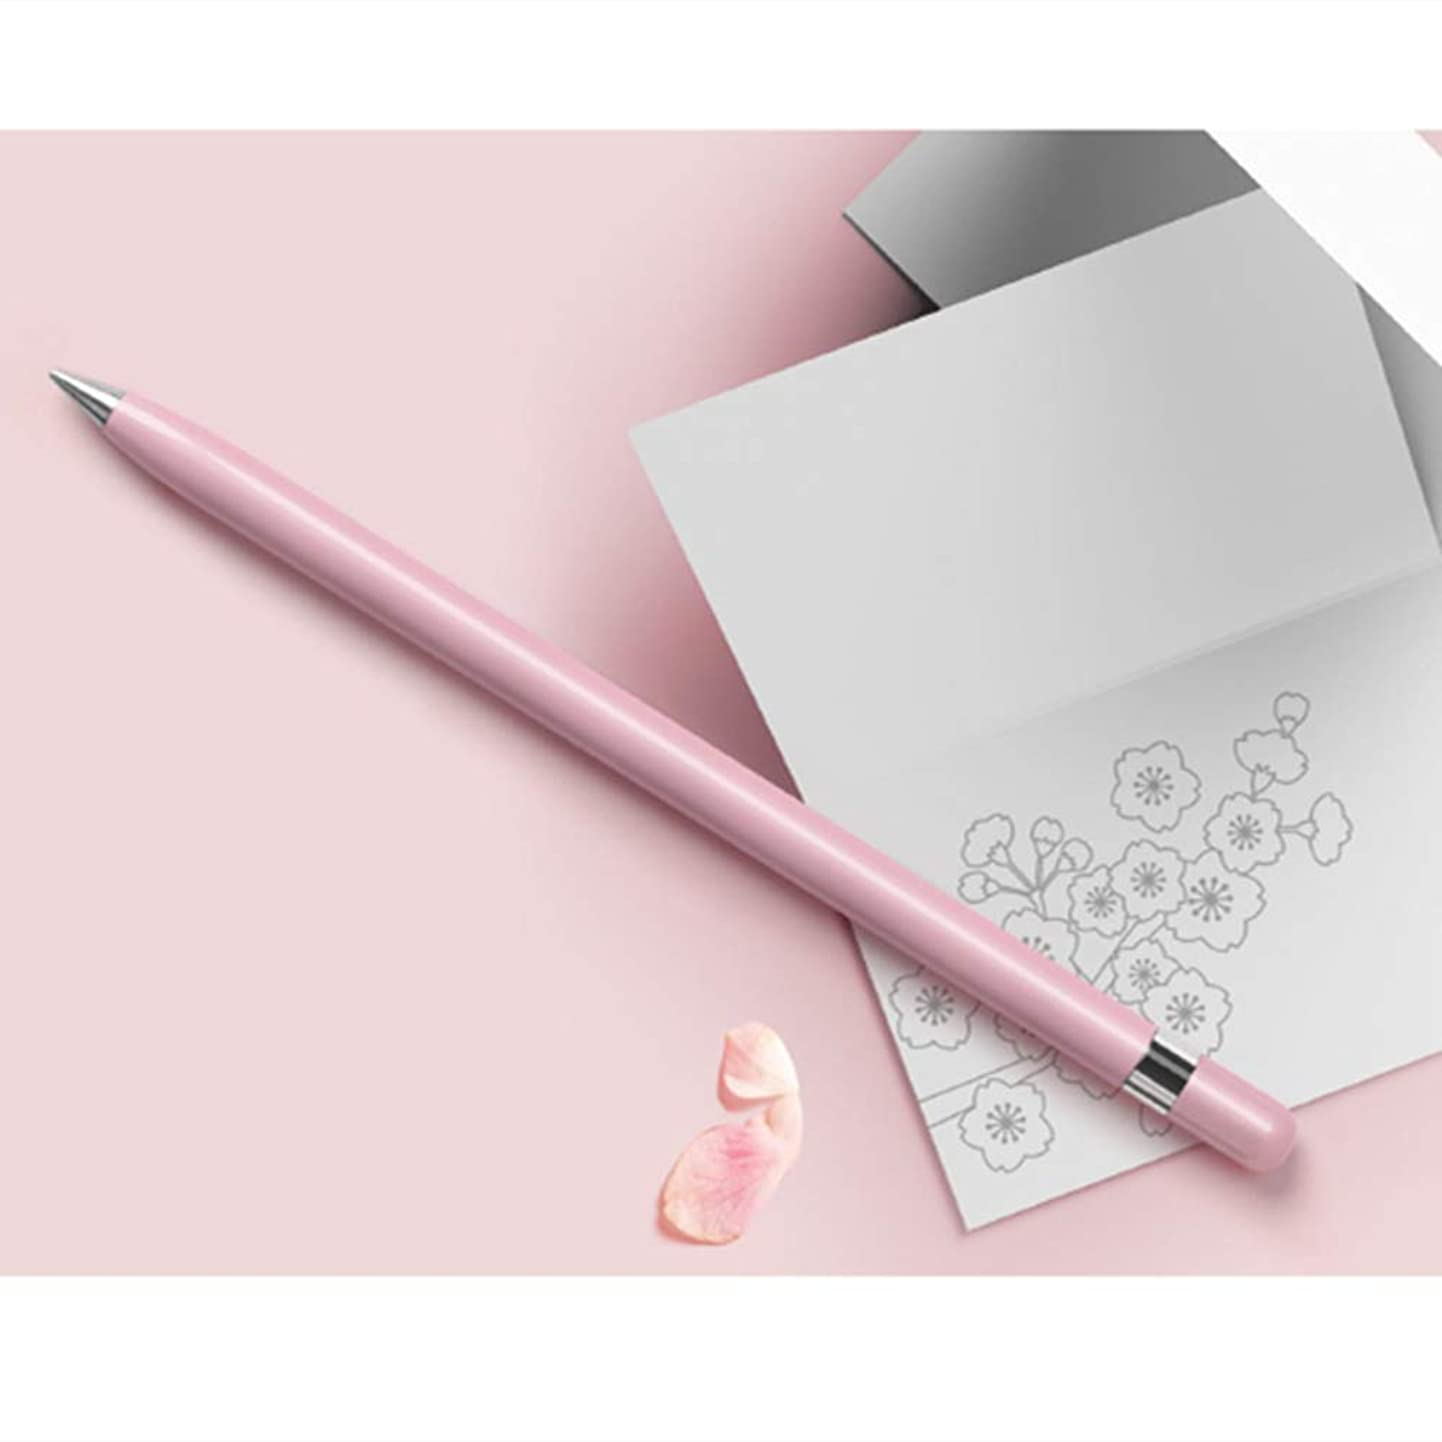 Pencils,Special Pencil, Gift Box,Special stationery,No Need For a Pencil Sharpener (Pink) uiusezrdedu1